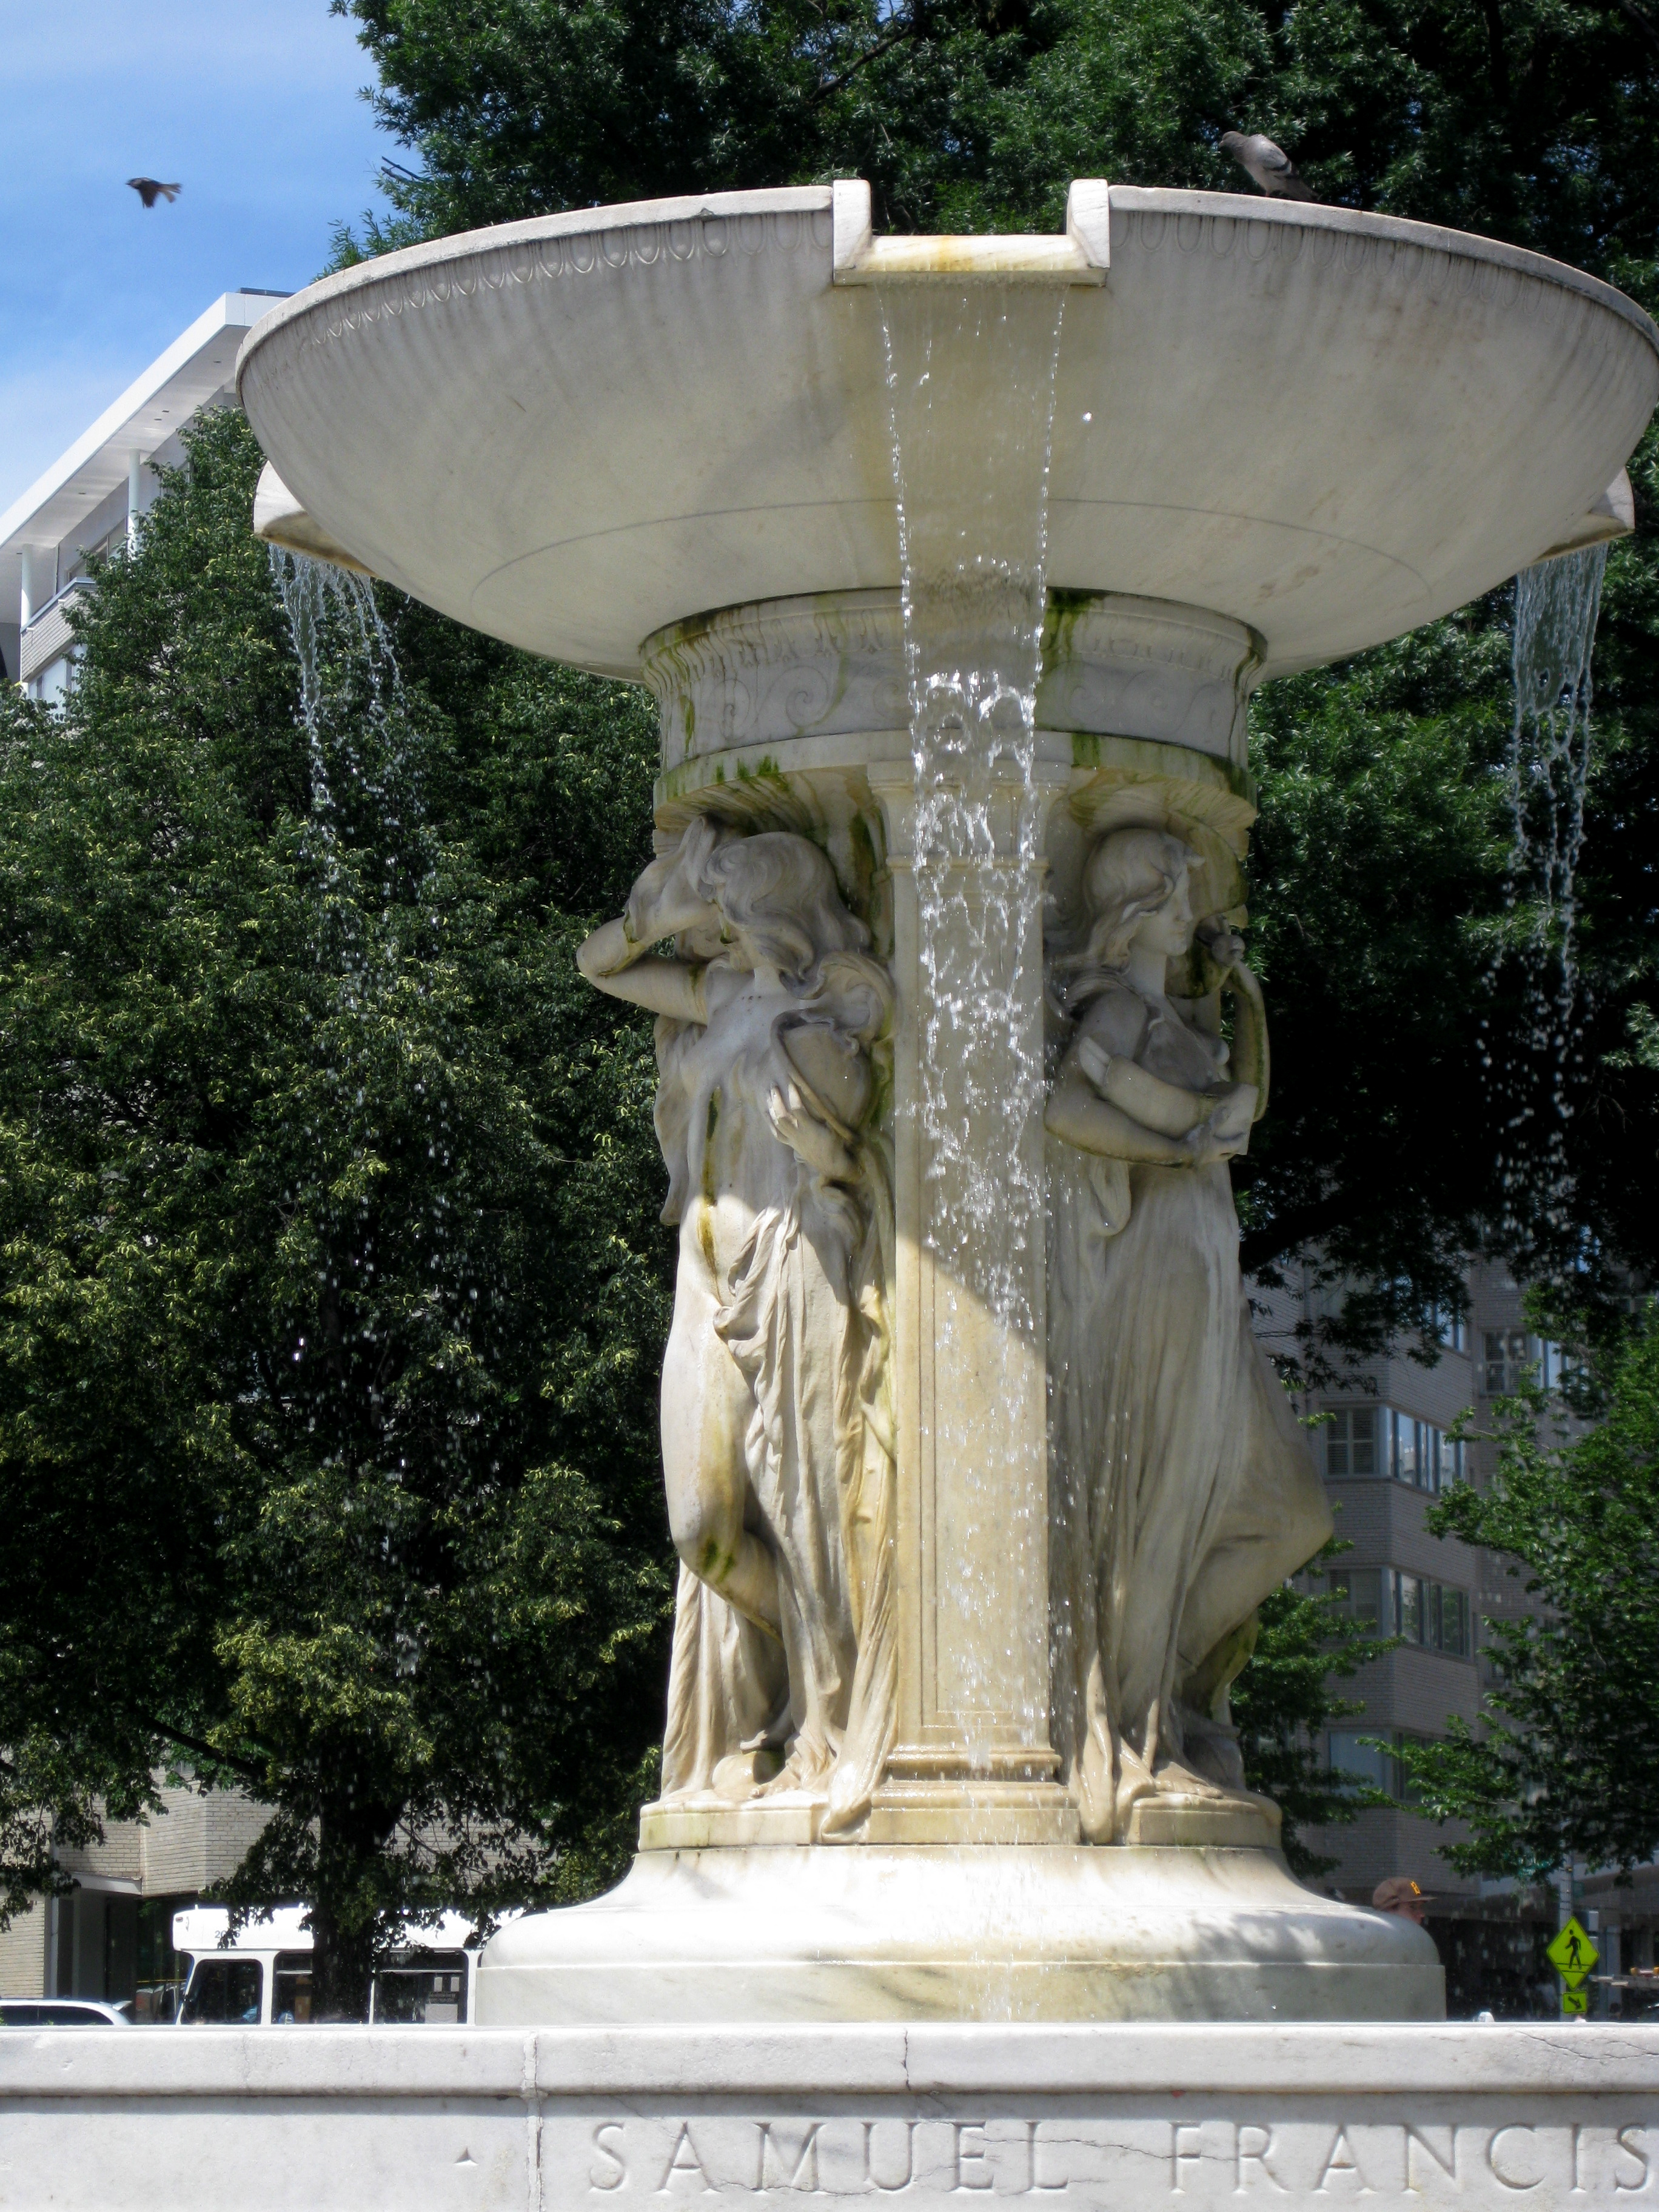 June 1: I took a late lunch on Monday and ate in Dupont Circle.